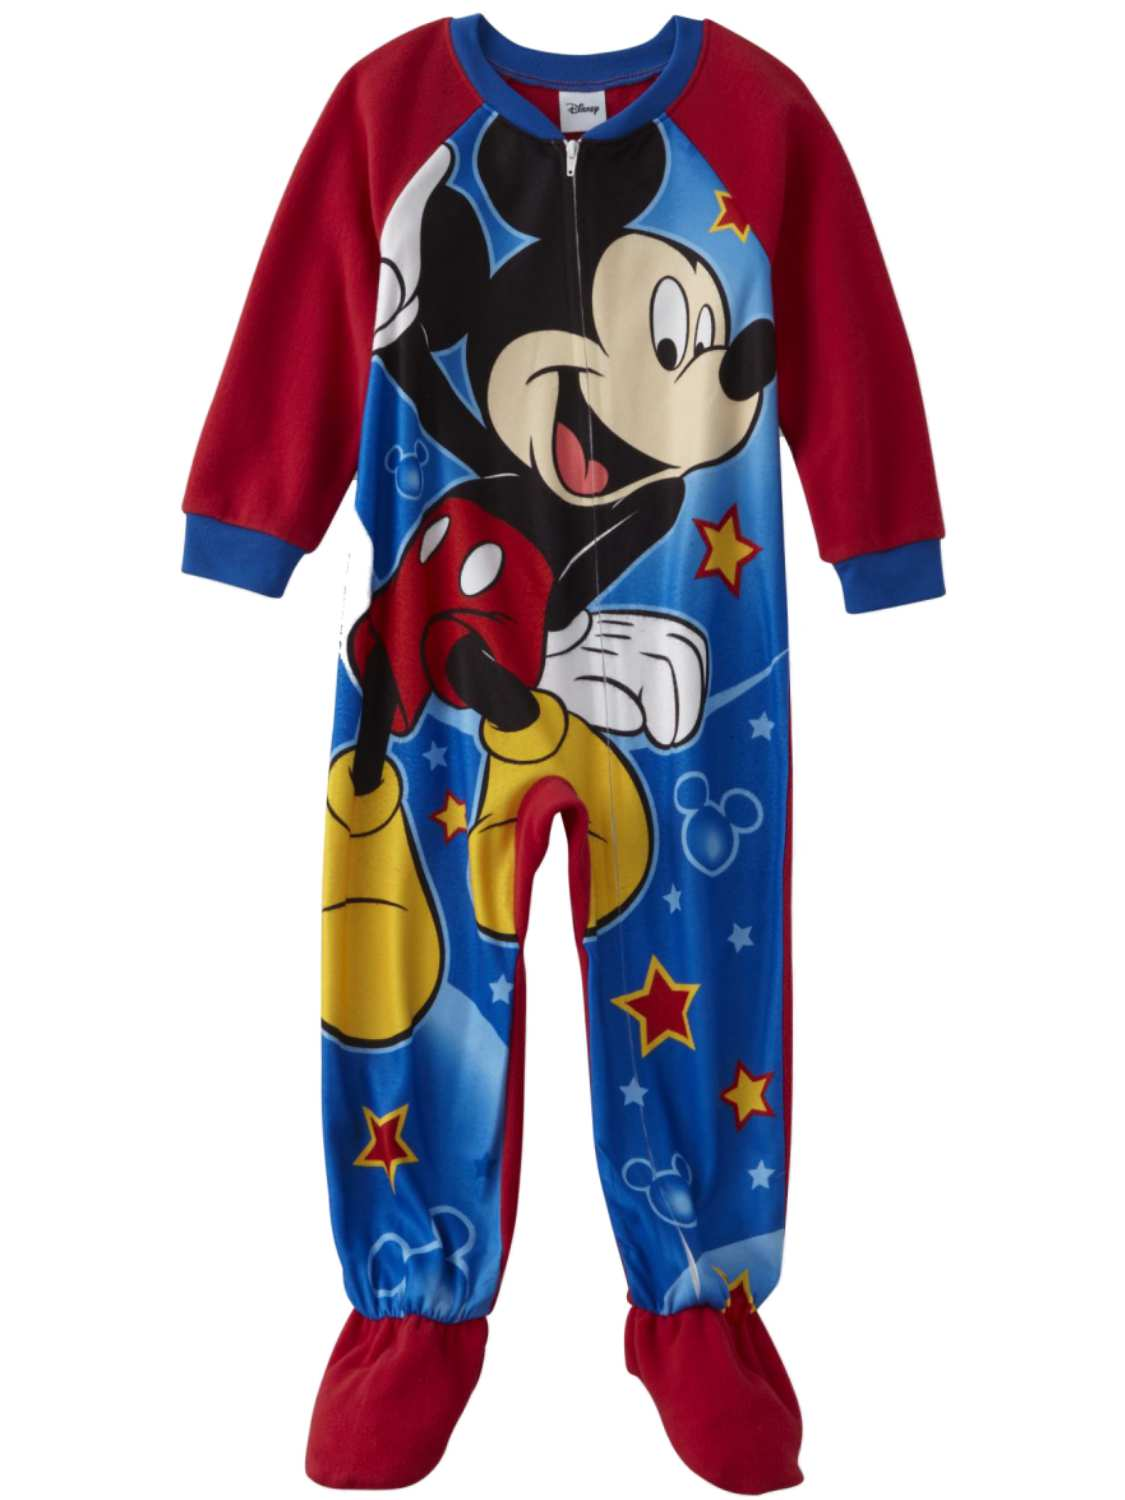 Disney Toddler Boys Red Fleece Mickey Mouse Sleeper Pajamas